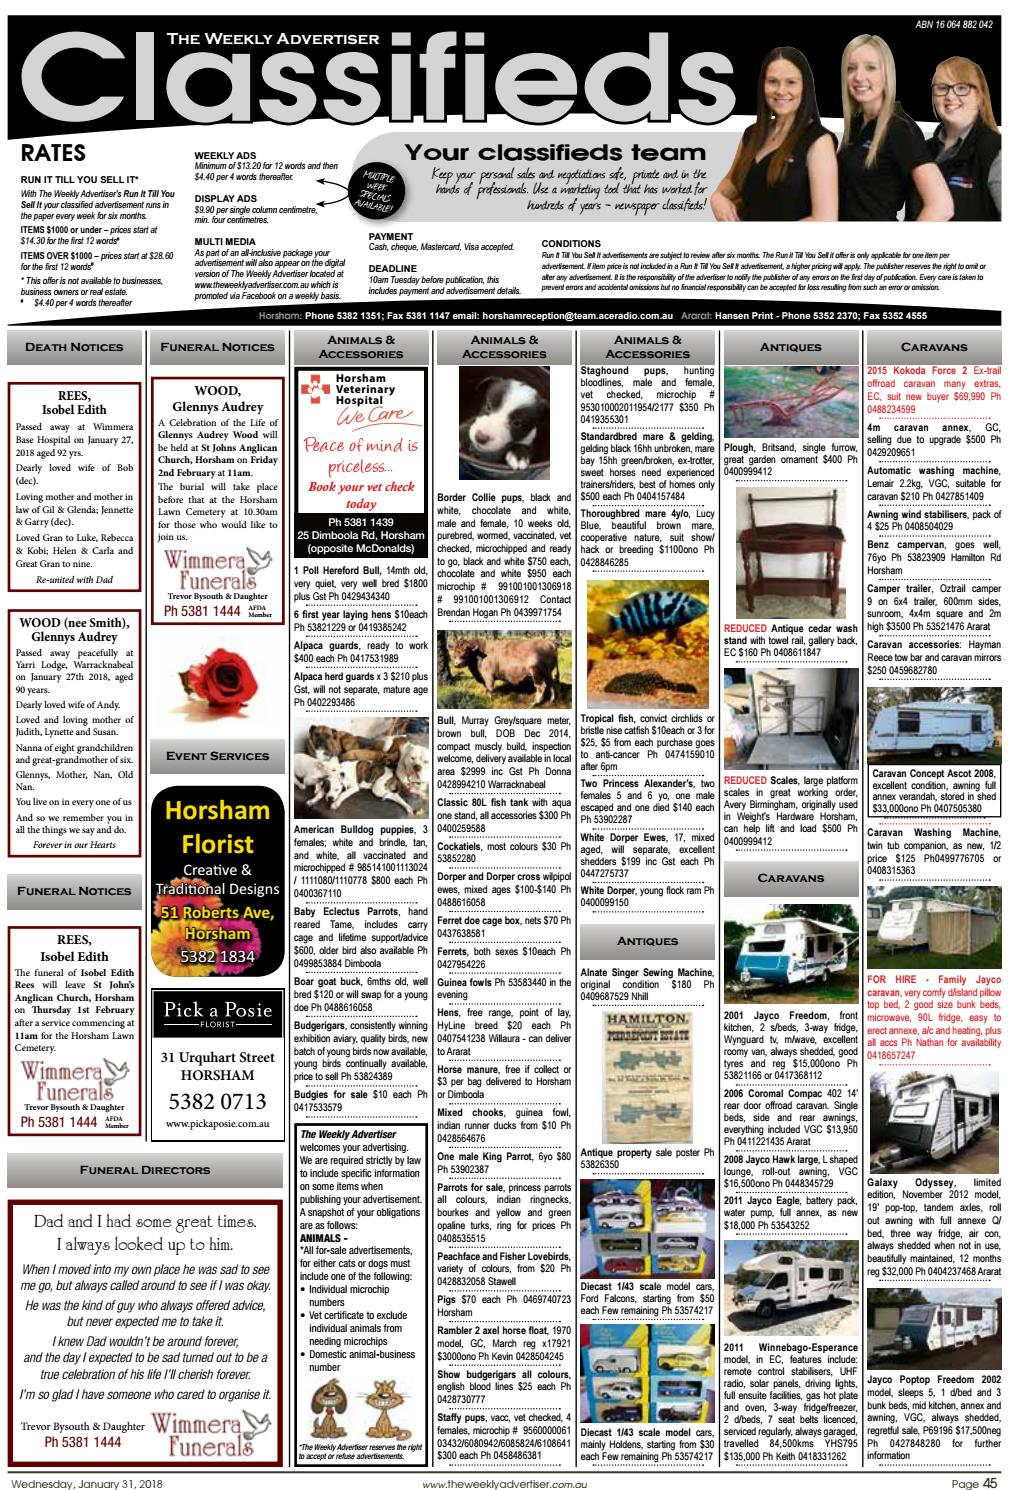 The Weekly Advertiser - Wednesday, January 31, 2018 by The